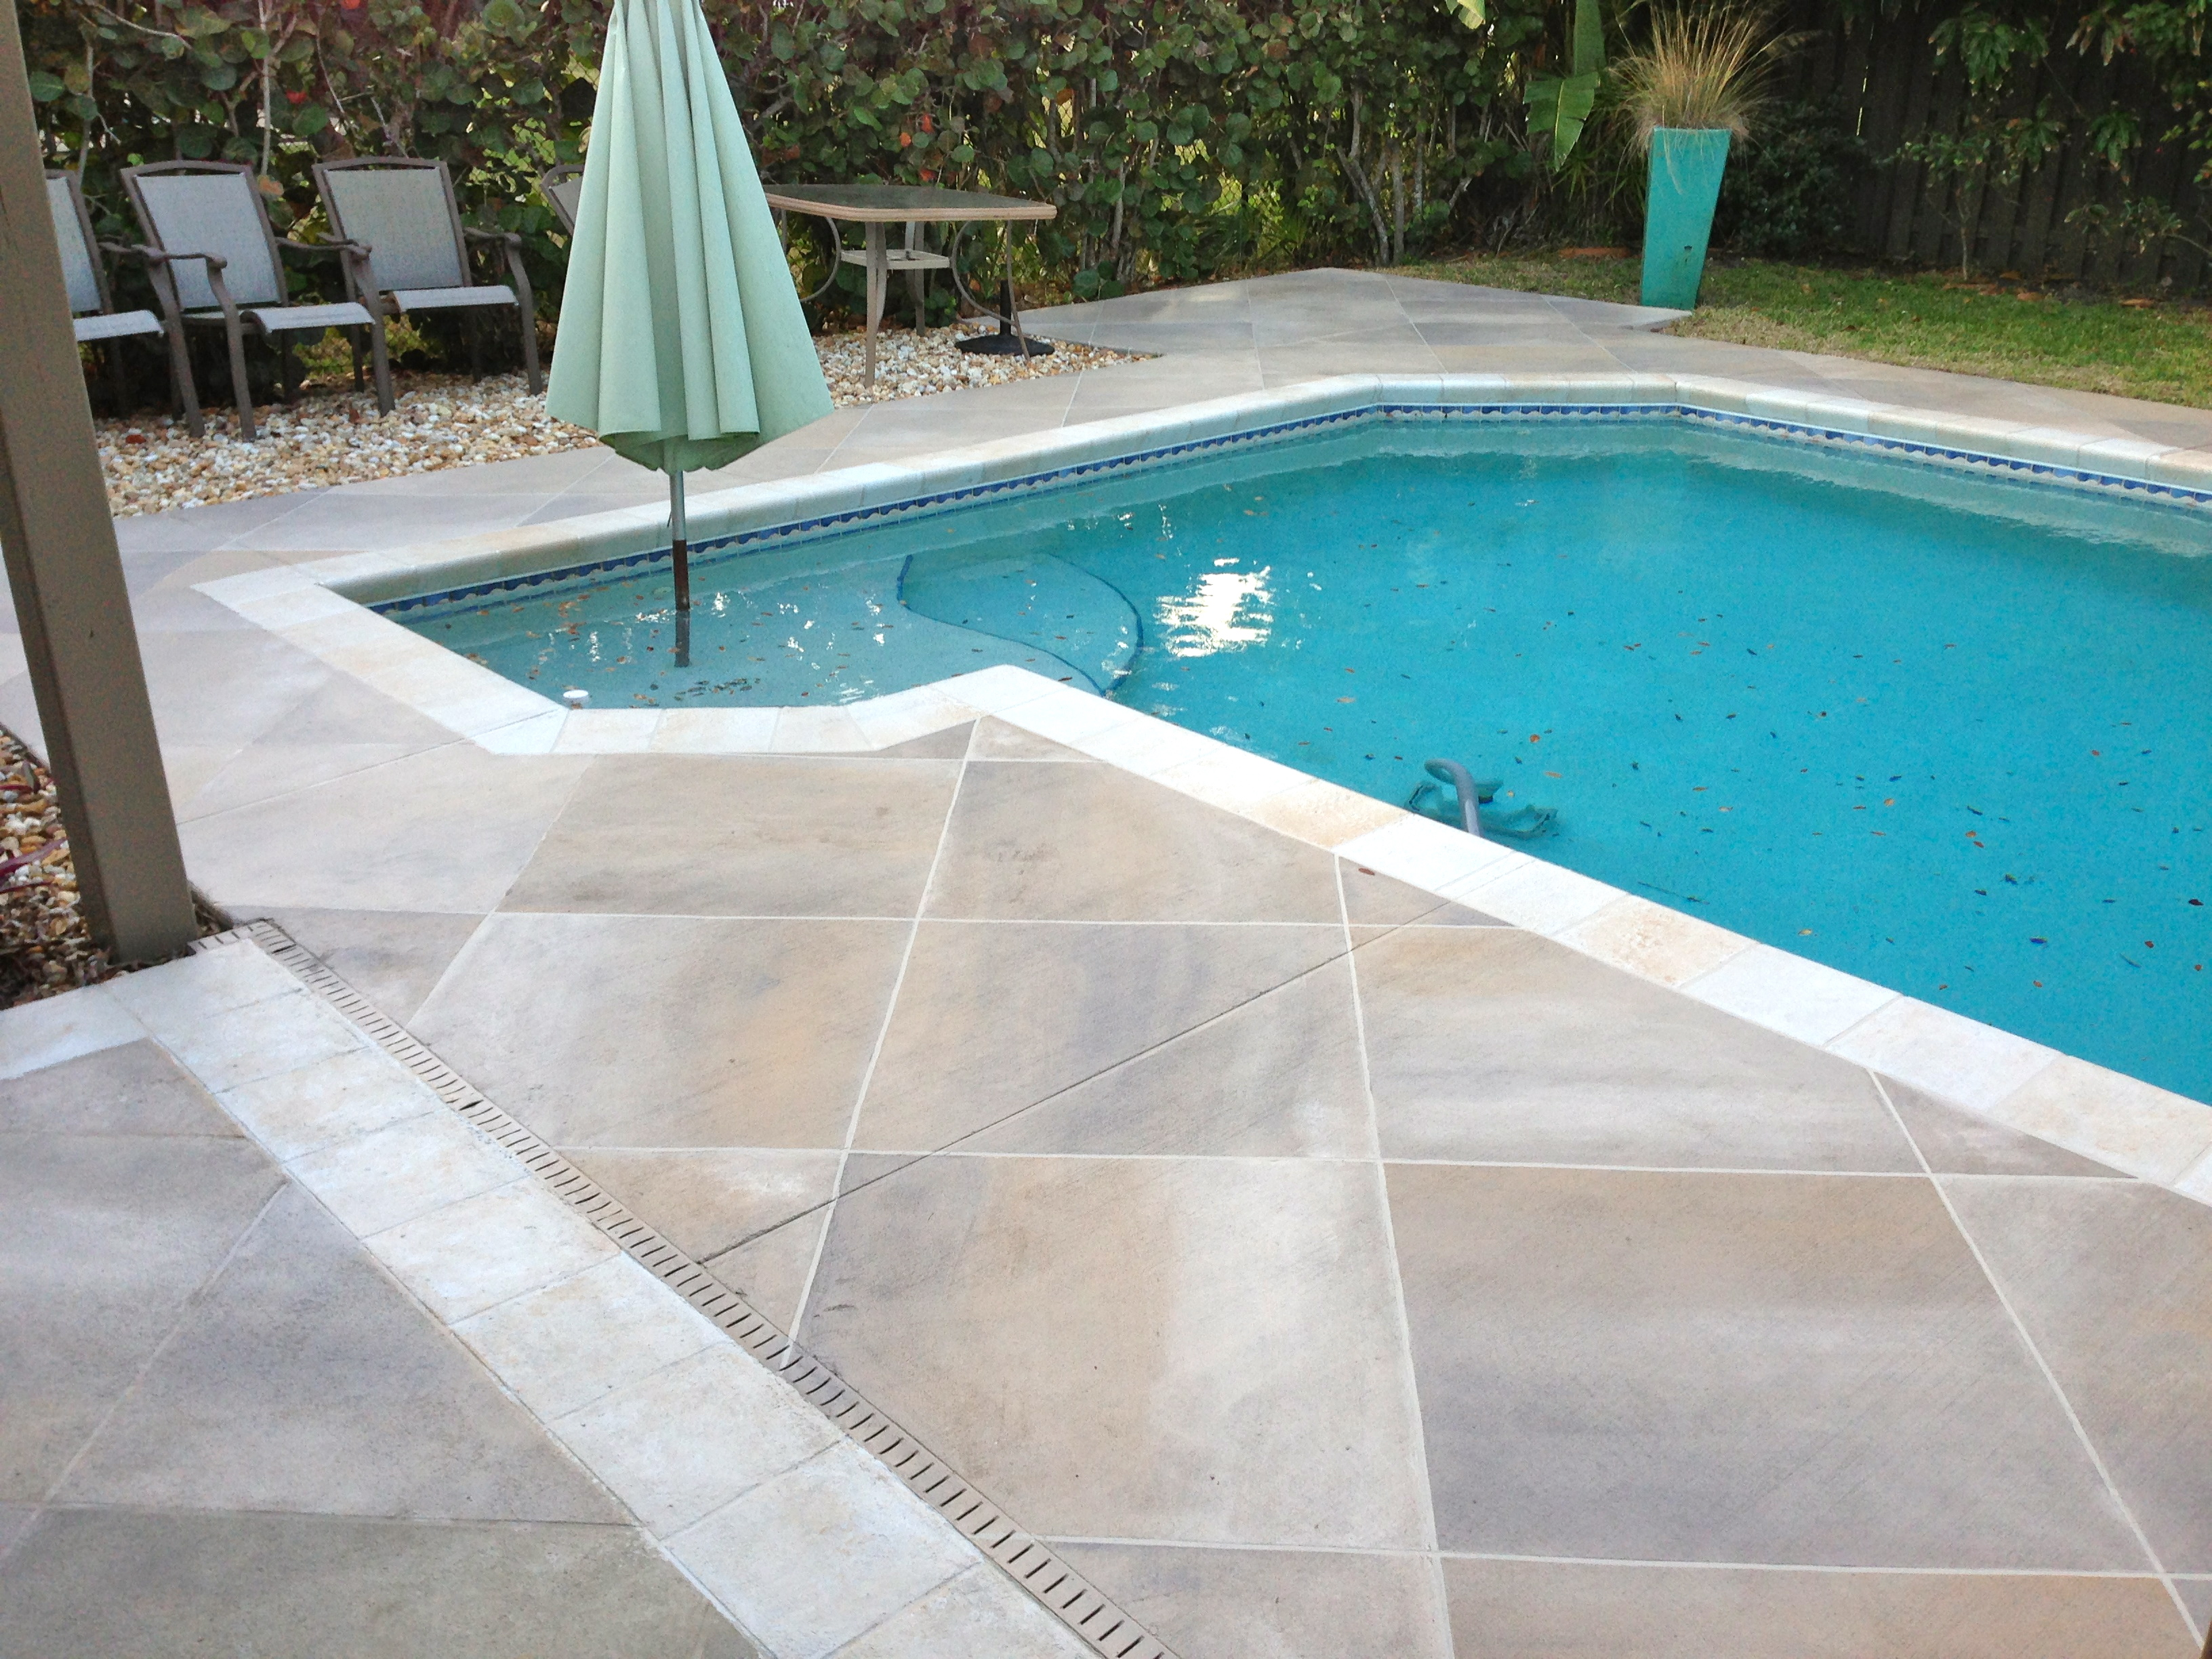 Concrete Designs Florida | concrete design florida